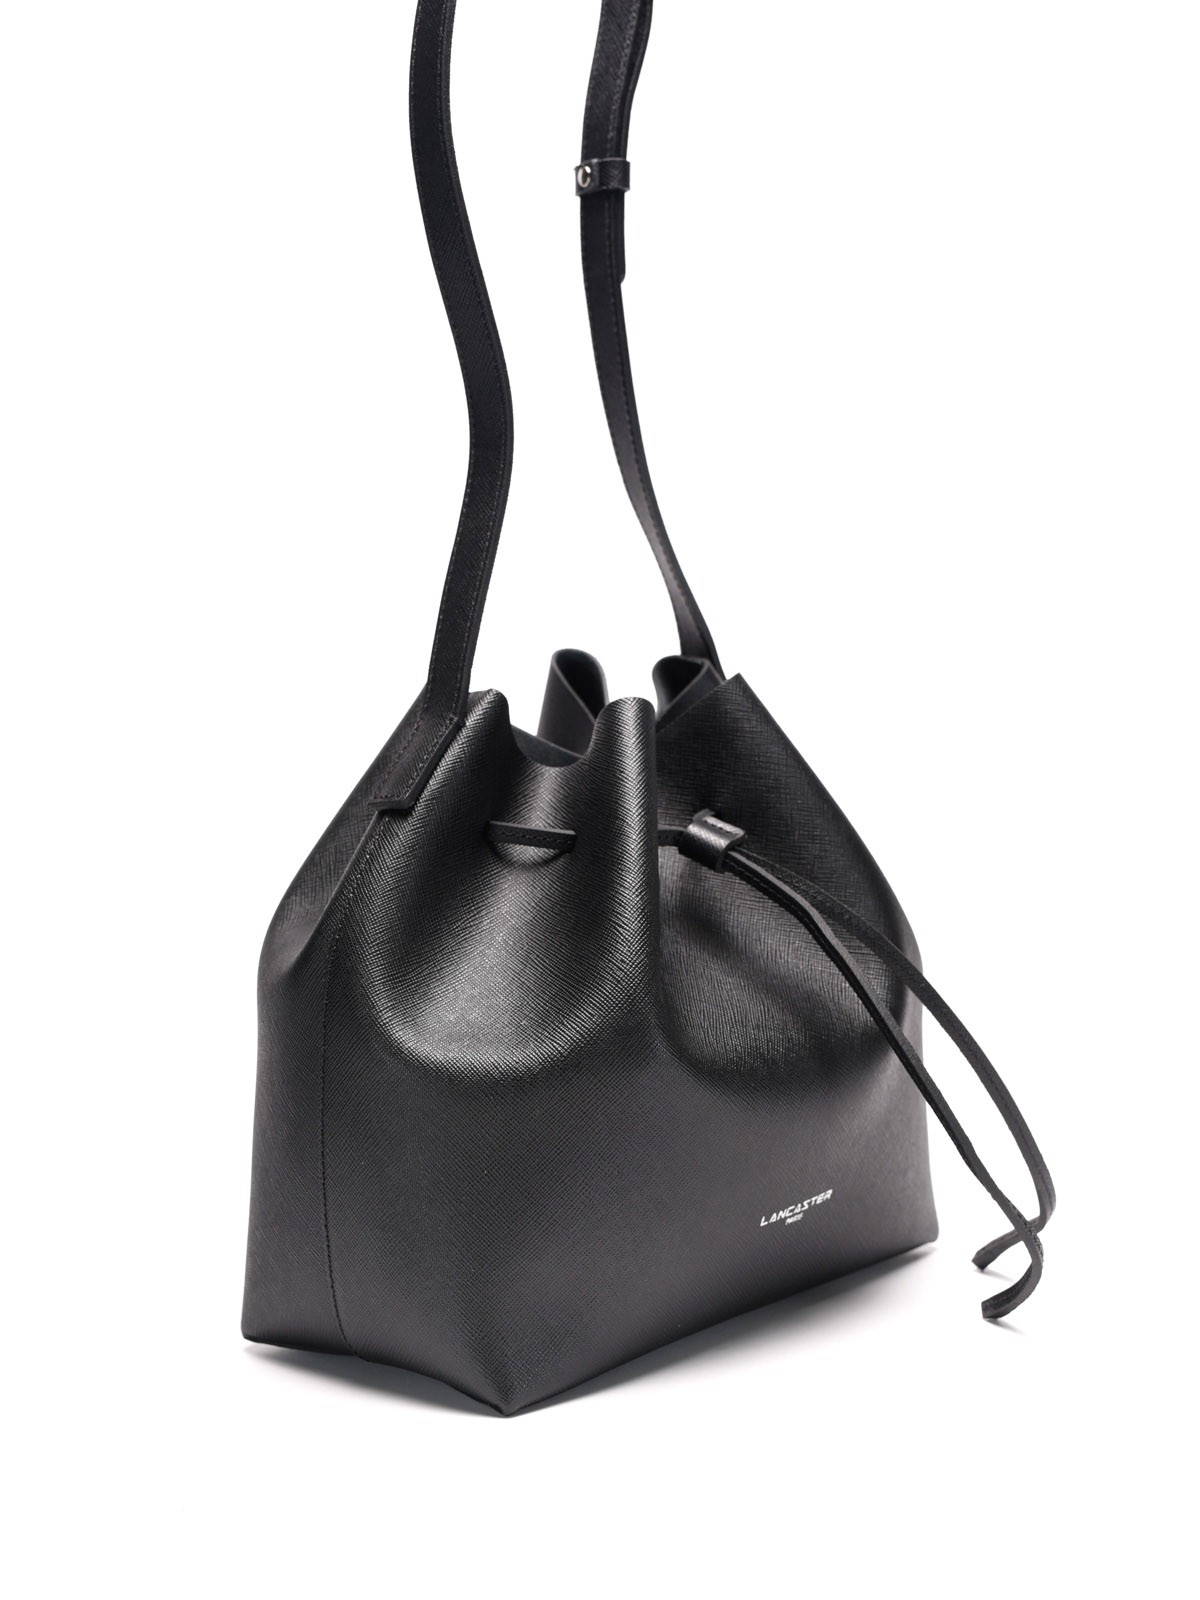 Lancaster Bucket Bags Online Saffiano Leather Small Bag